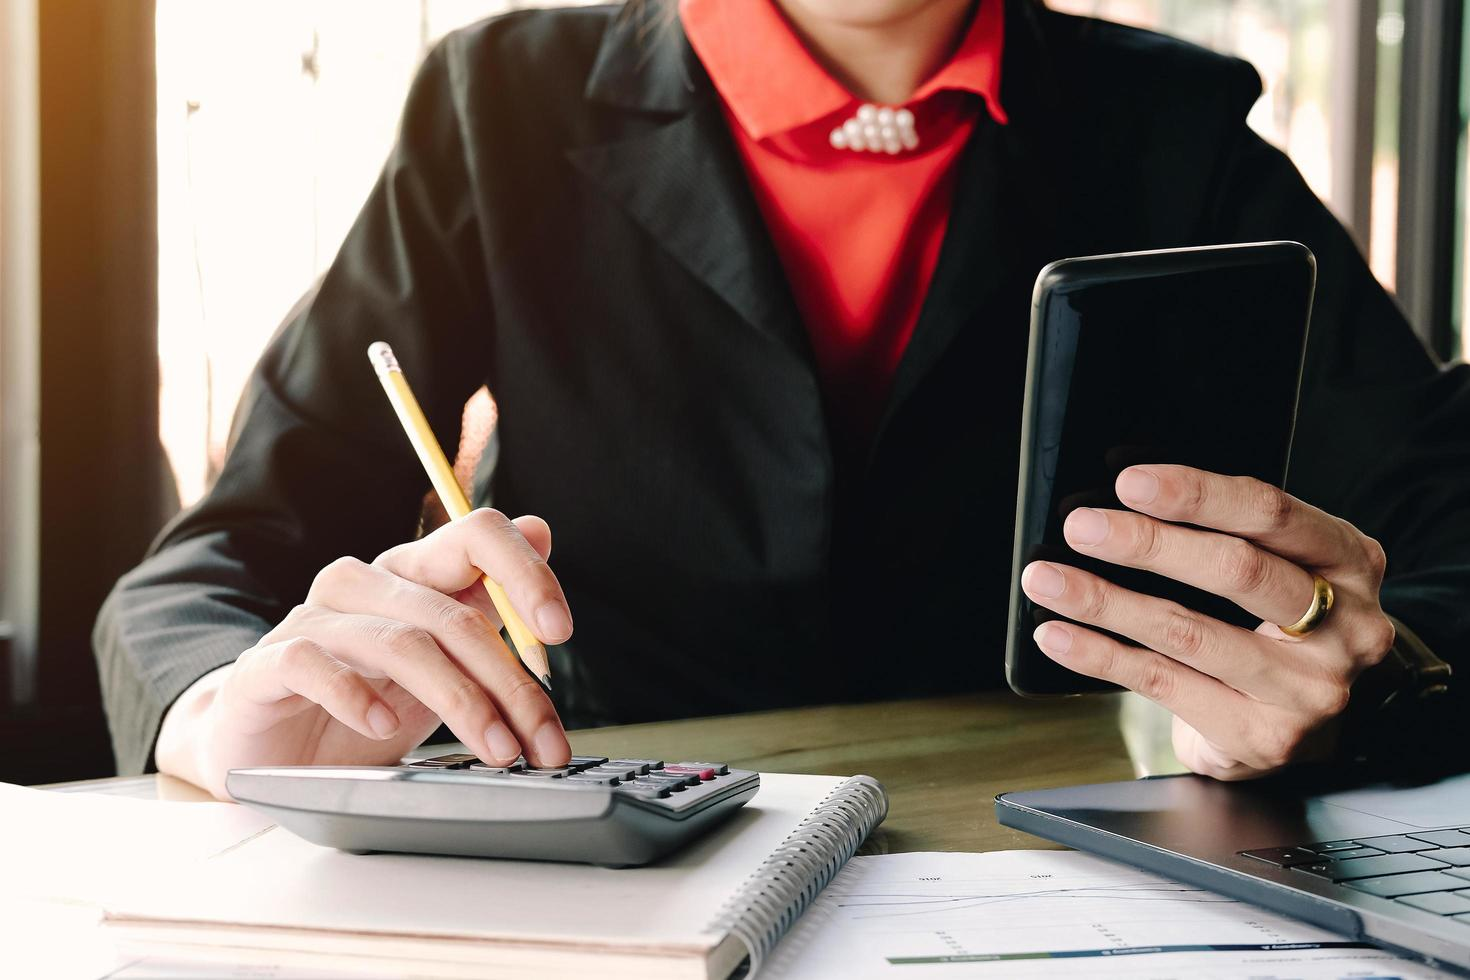 Businesswoman looking at smartphone and using calculator photo